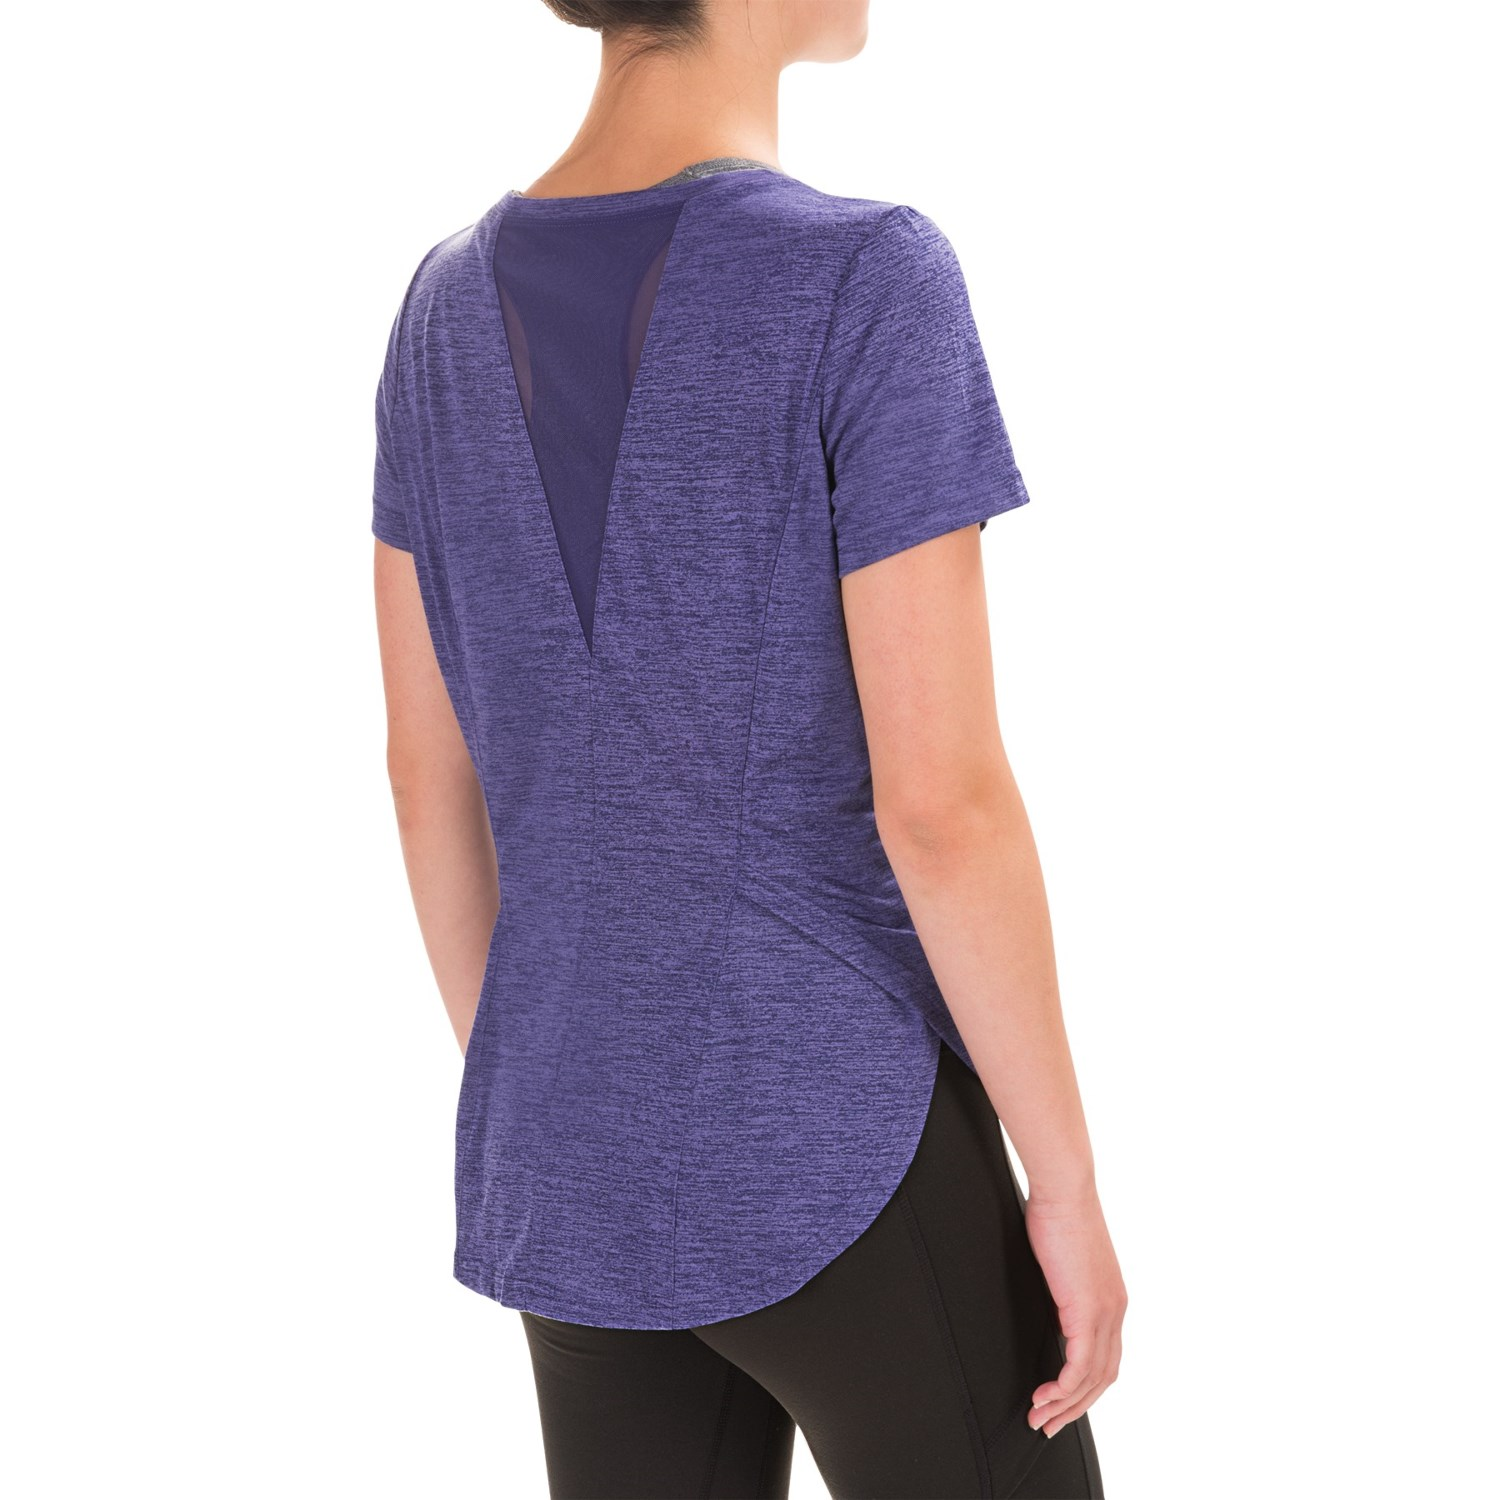 Apana yoga shirt for women save 83 Yoga shirts with sleeves